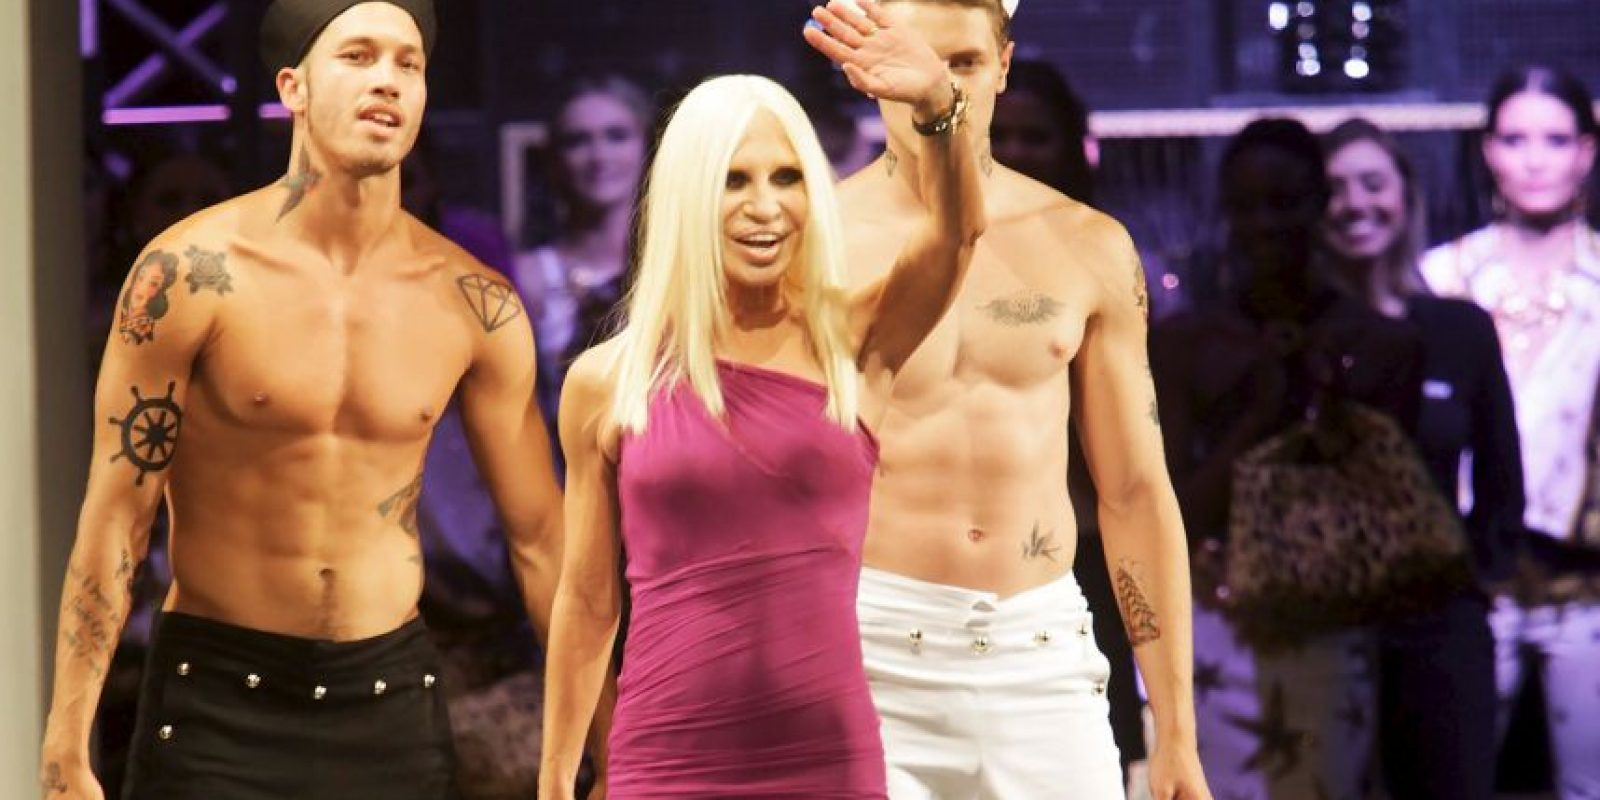 6. Donatella Versace Foto: Getty Images